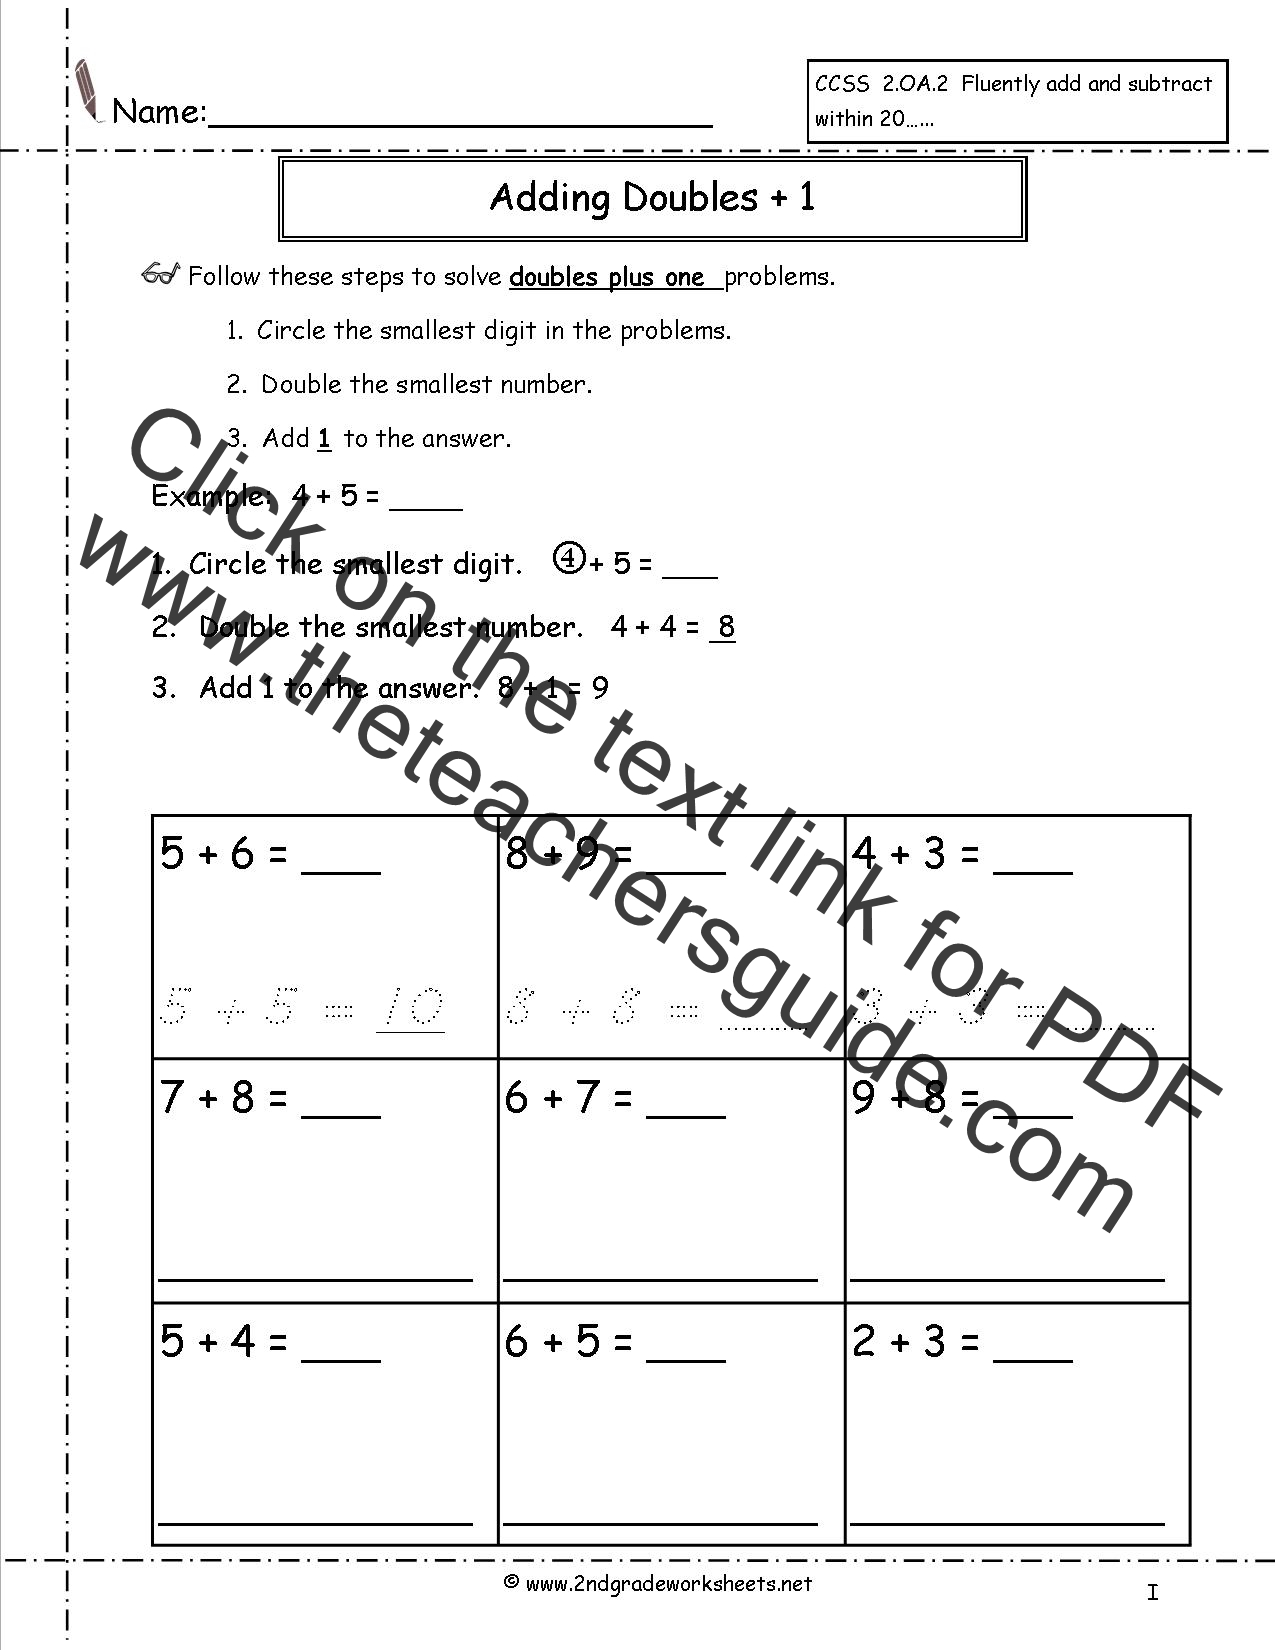 Worksheets Doubles Facts Worksheets 2nd Grade free single digit addition worksheets doubles plus one intro facts worksheet